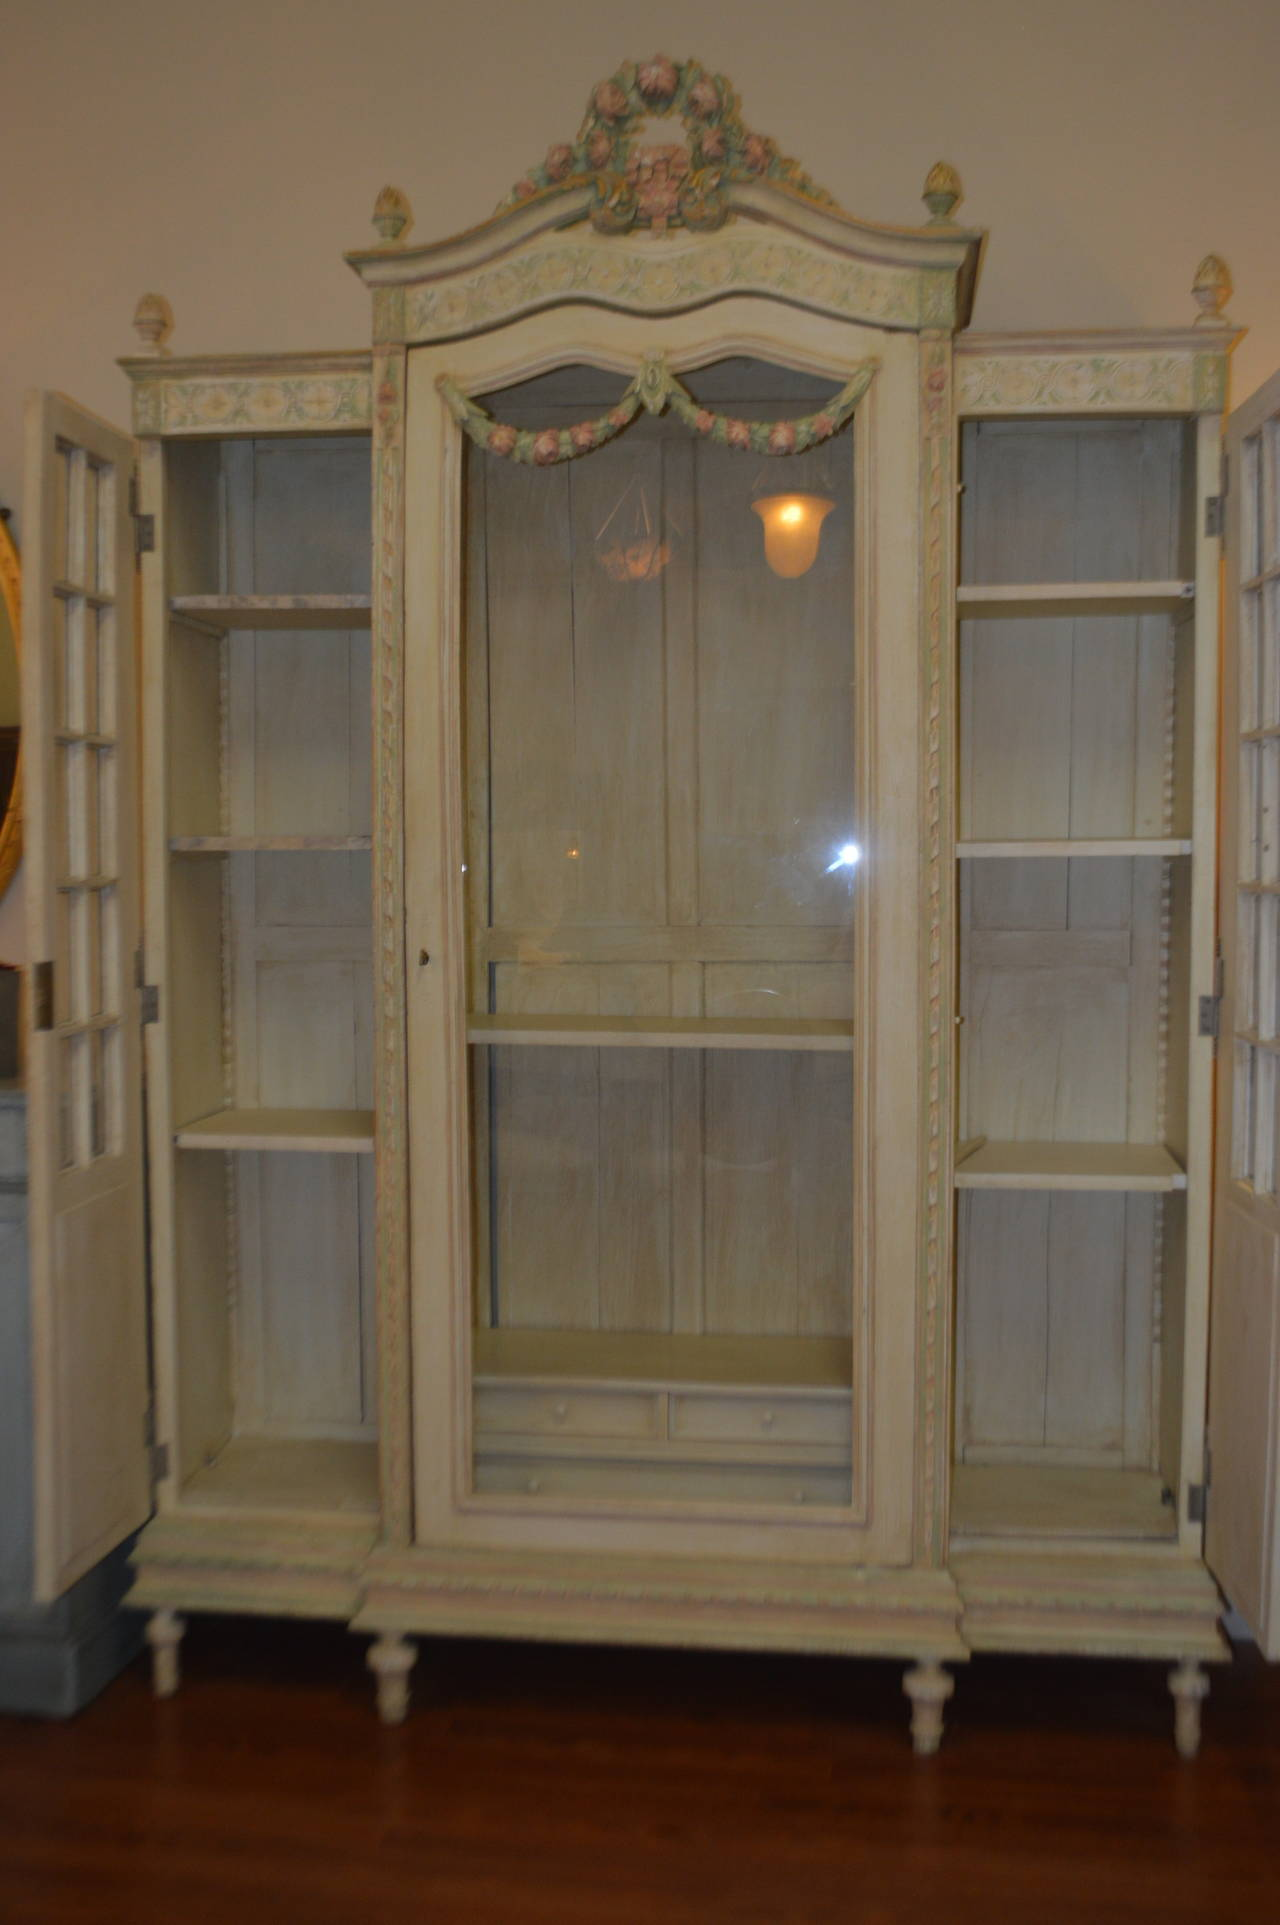 Louis XVI Style Painted Armoire with Glass Door 2 & Louis XVI Style Painted Armoire with Glass Door For Sale at 1stdibs Pezcame.Com